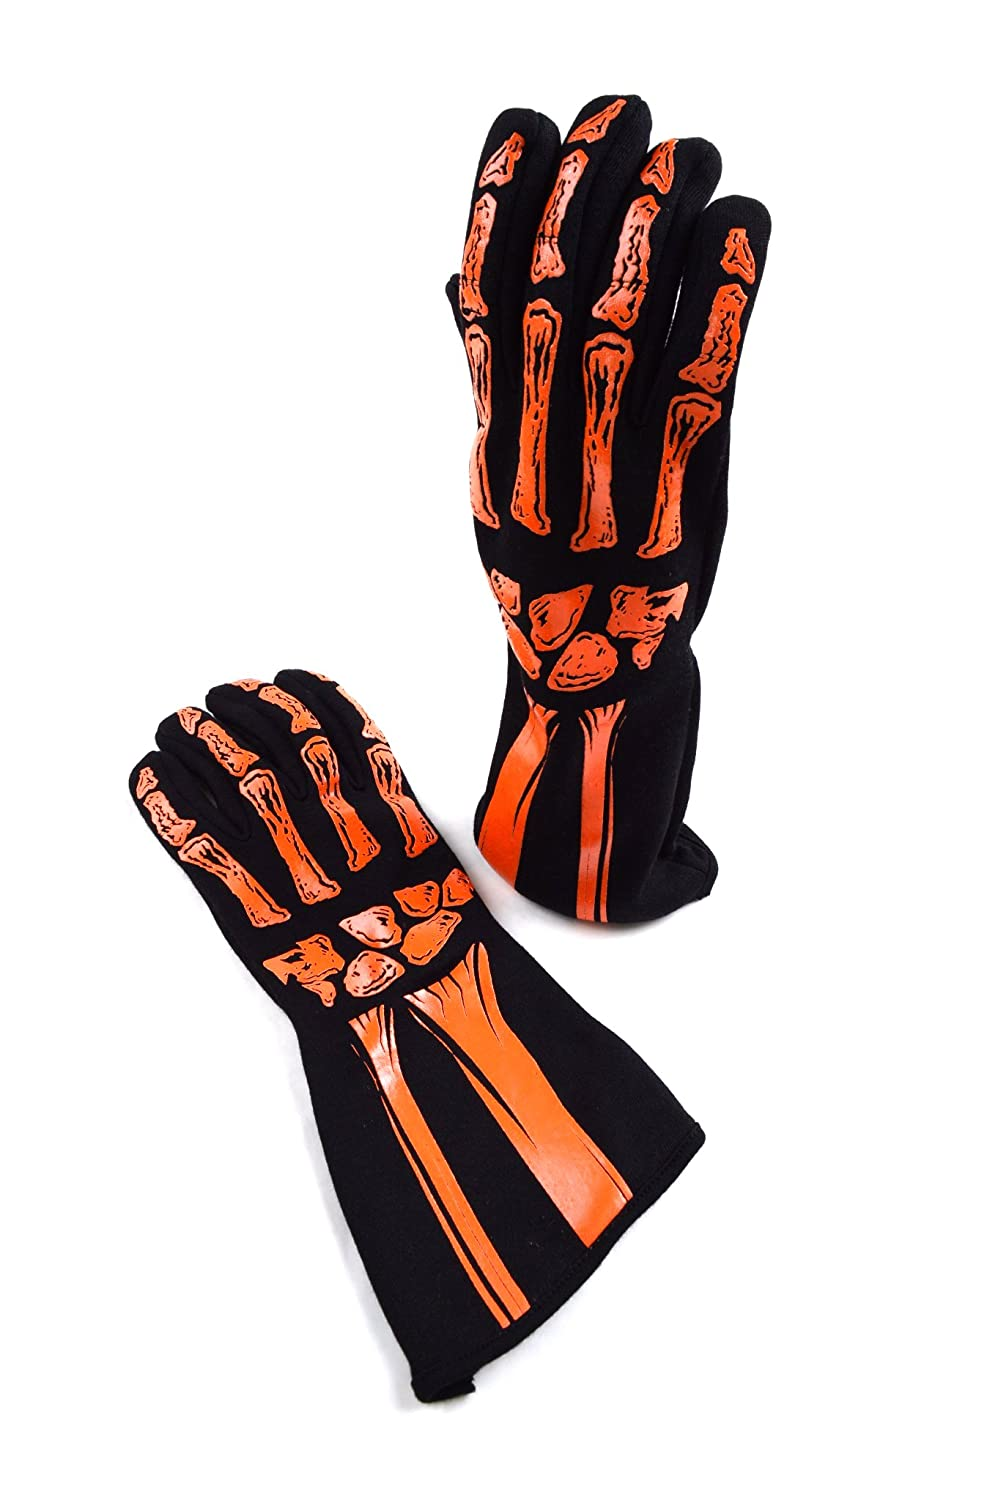 Racerdirect RJS Racing SFI 3.3/5 New Skeleton Racing Gloves Orange/Black Size XL 600090155